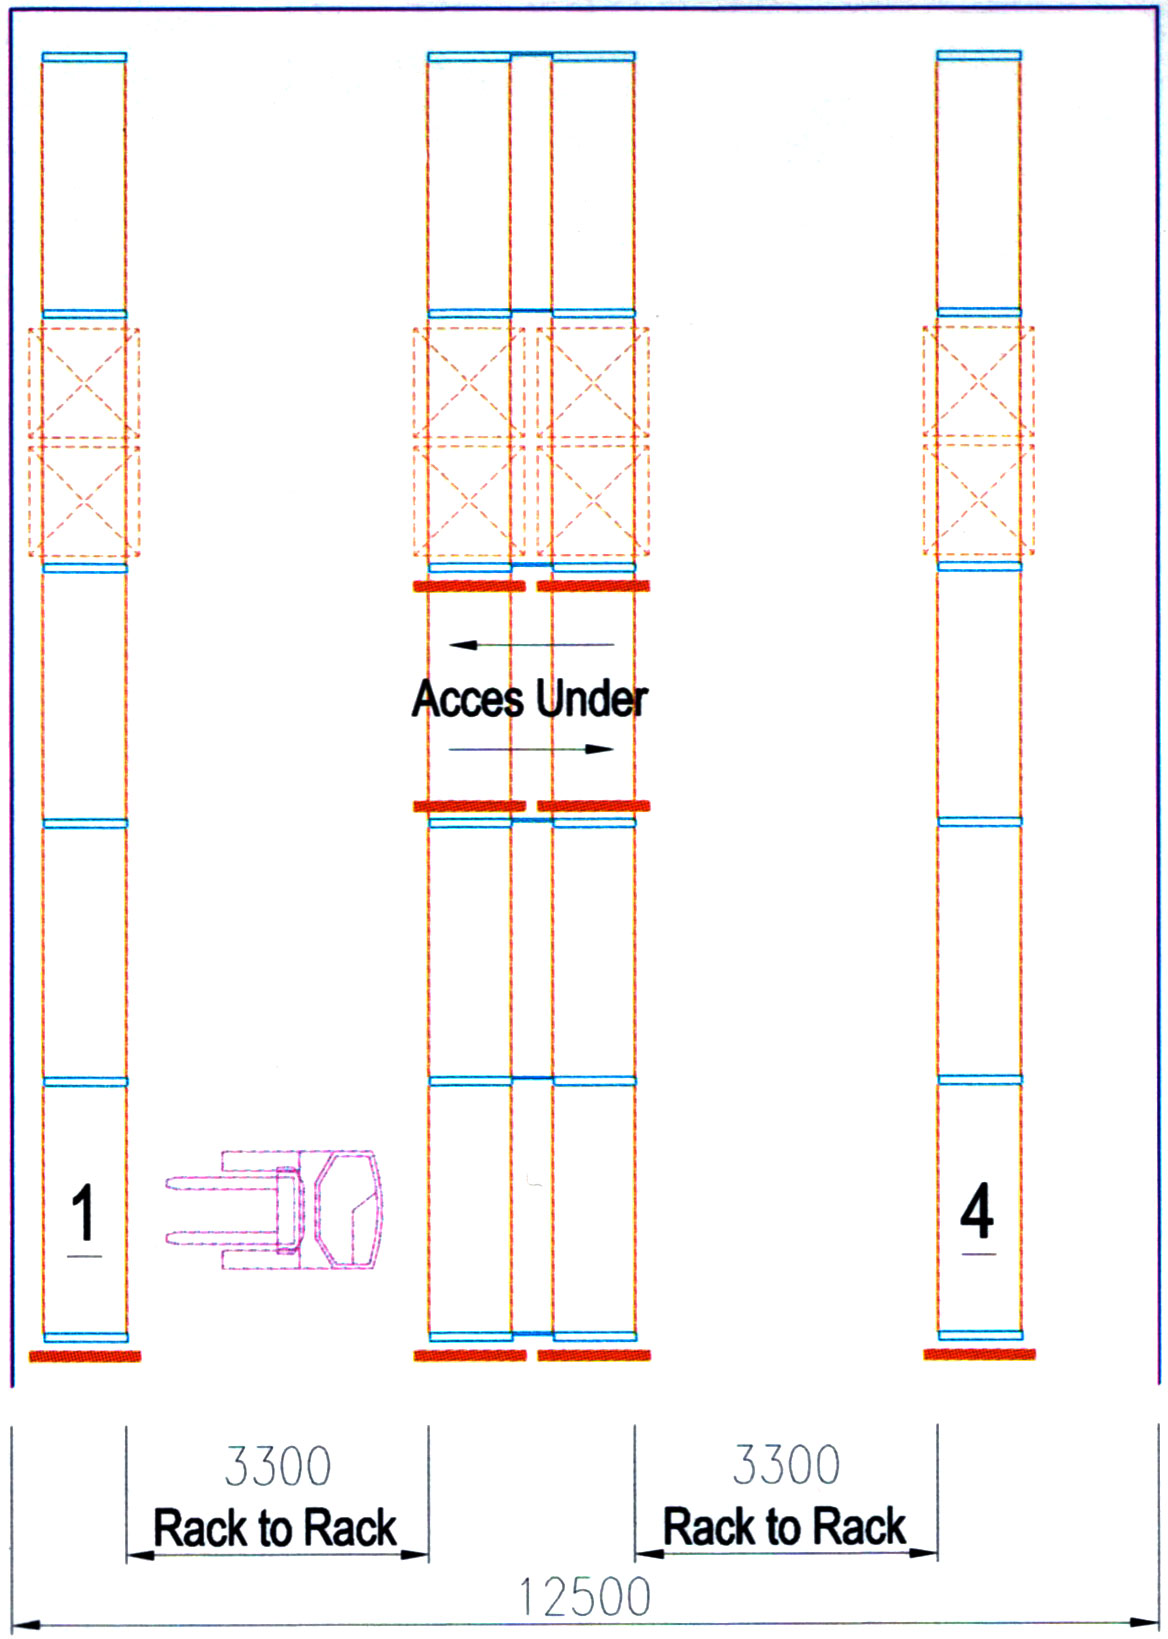 Aisle width for reach truck